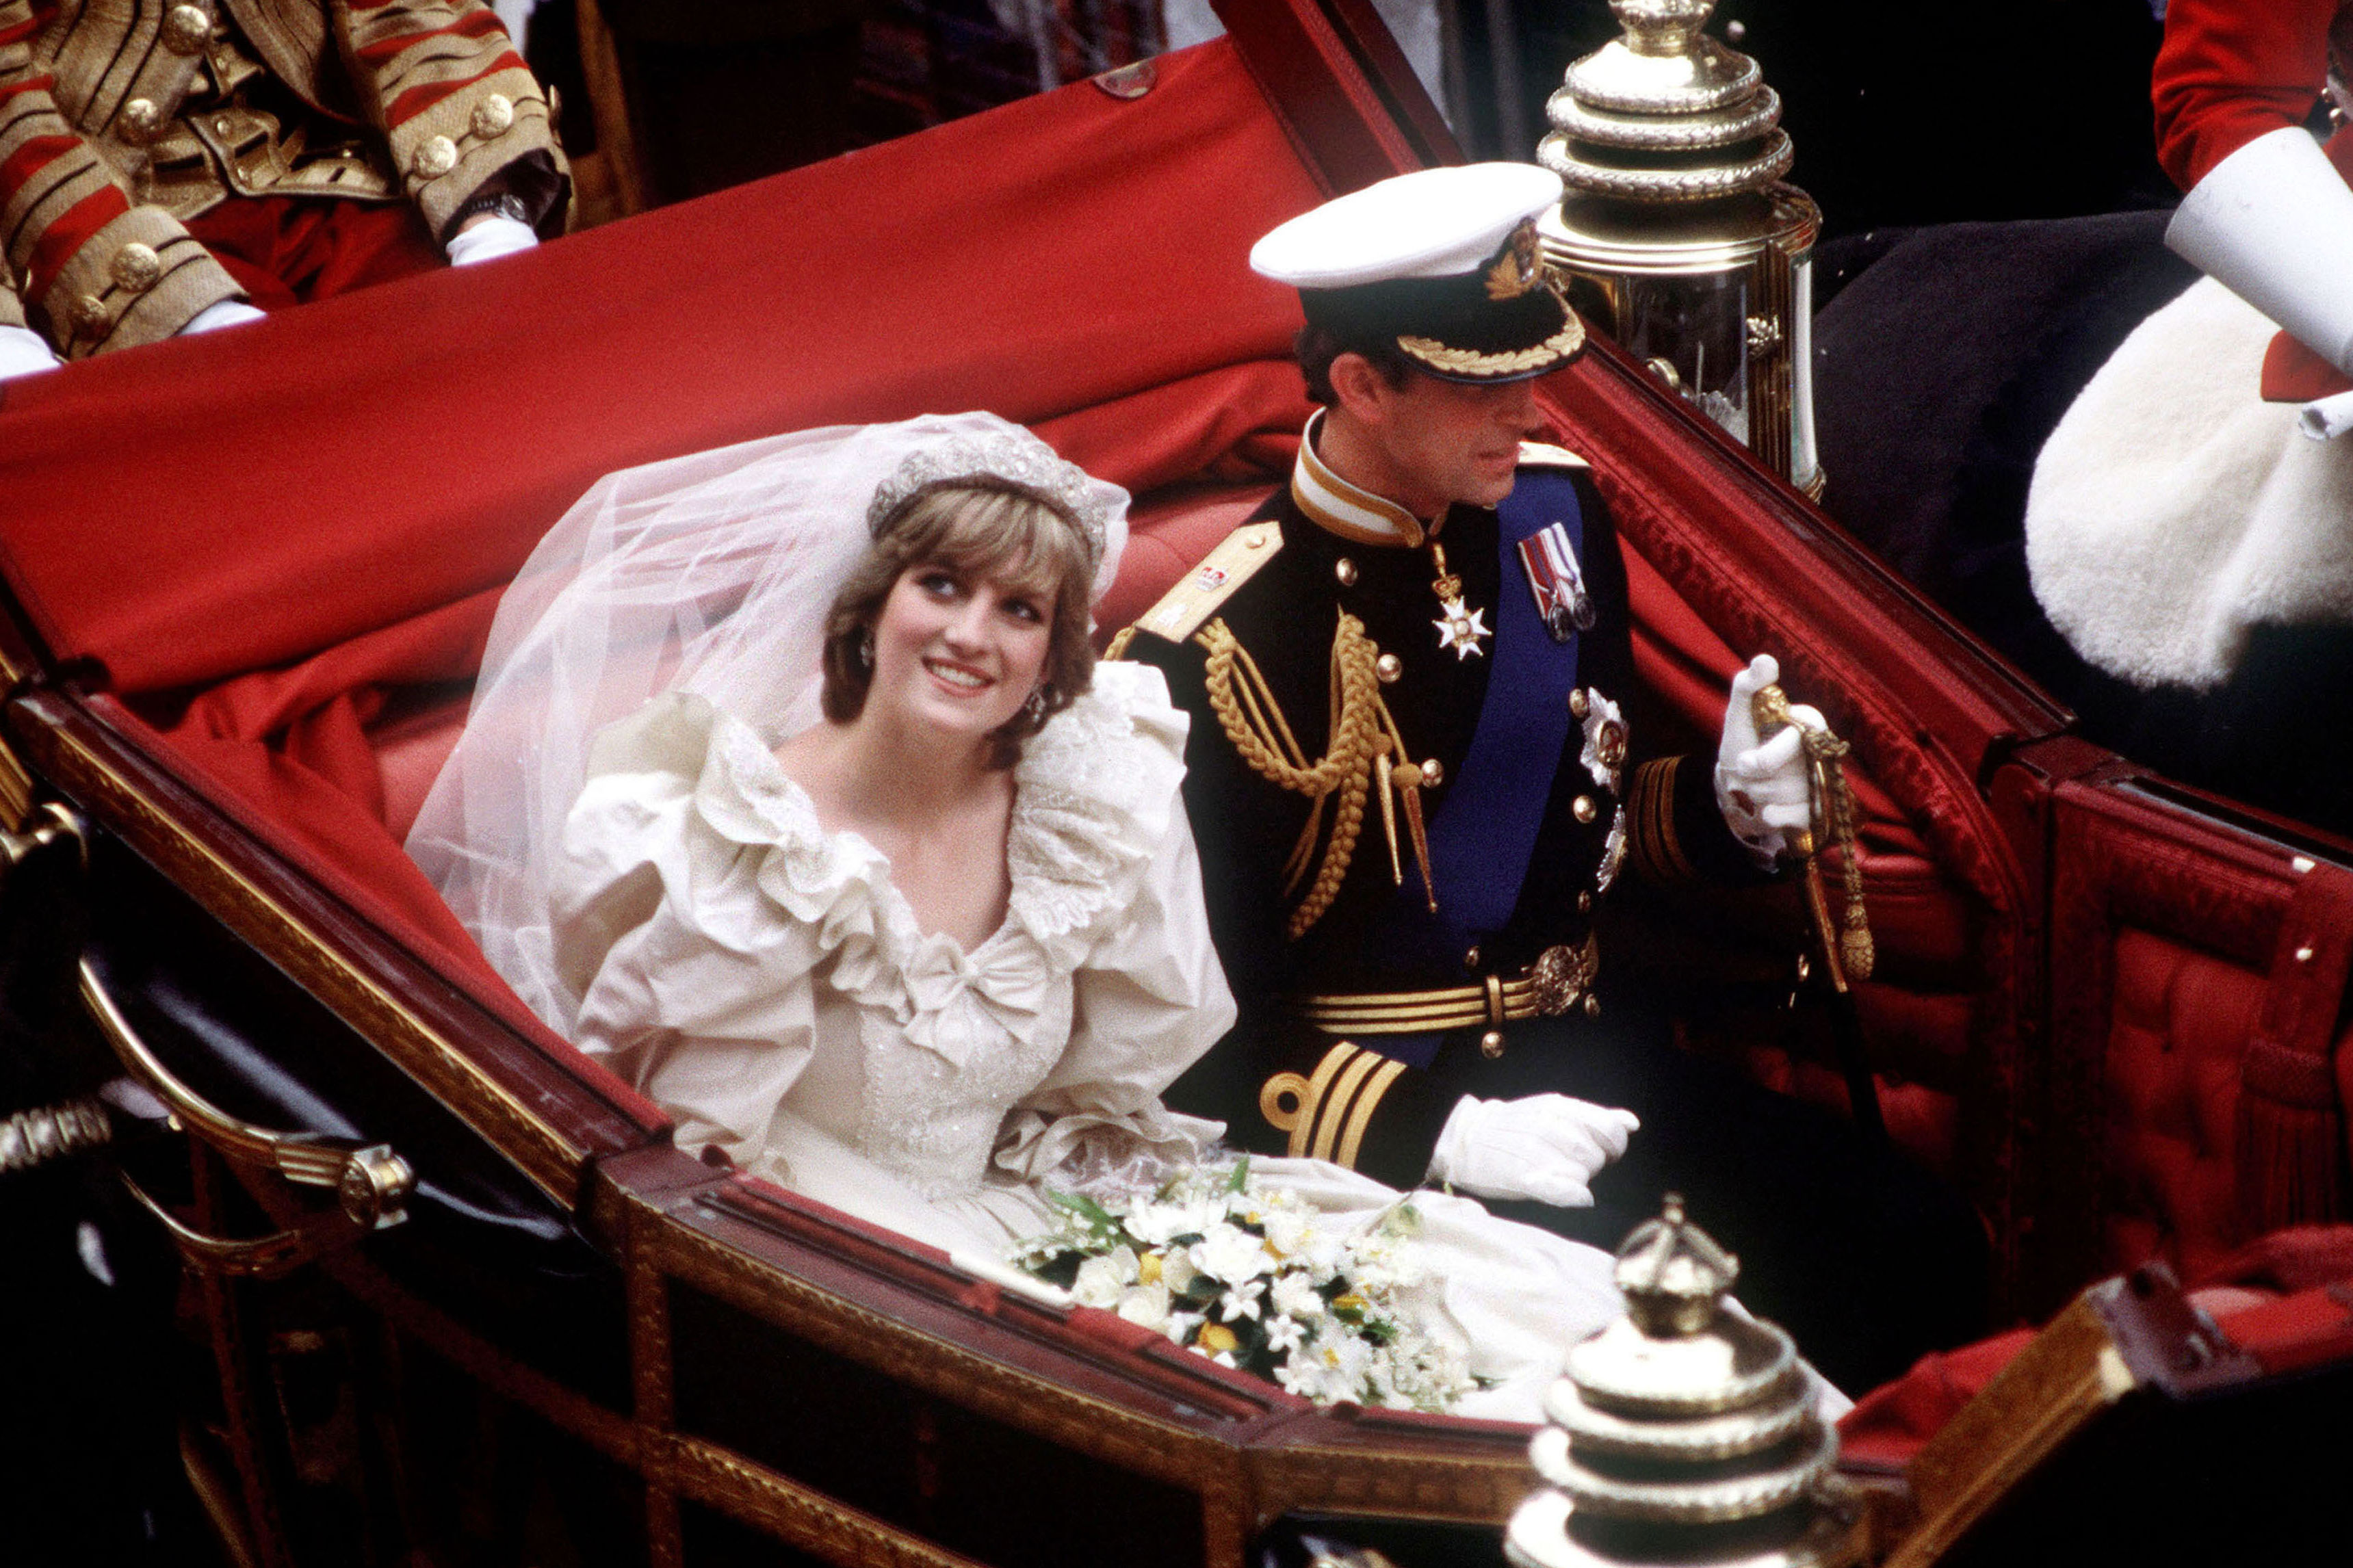 5 Things We Loved About Princess Diana's Dress